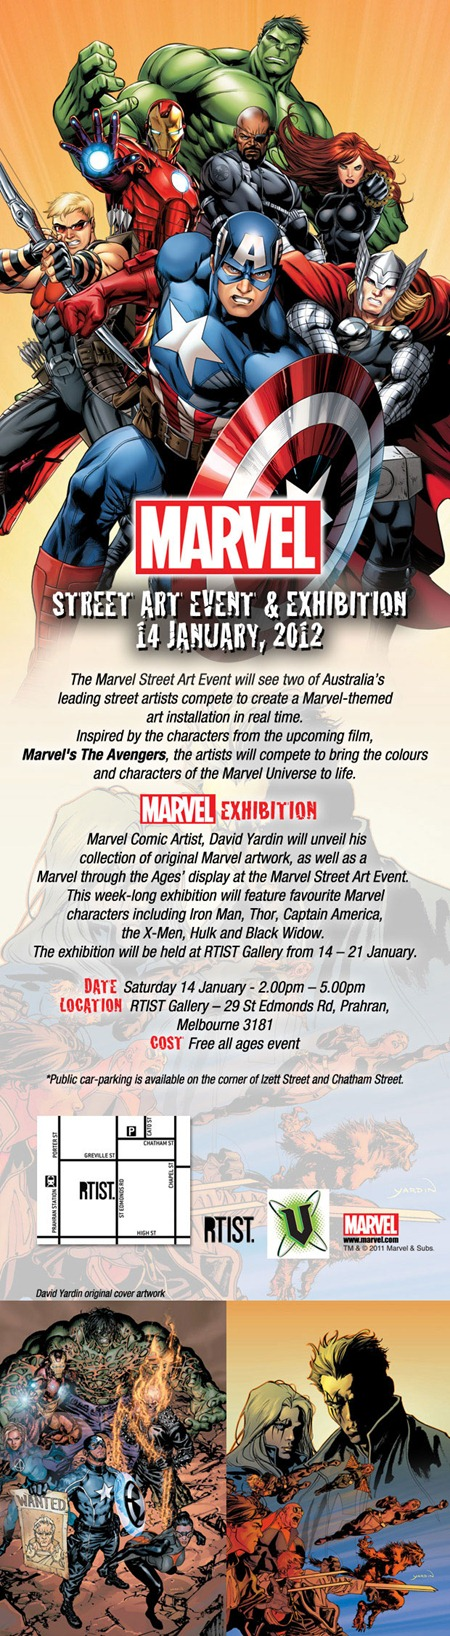 MARVEL Street Art Event Einvite thumb   Exhibition   Marvel Street Art Event   RTIST   Melbourne   street art genres melbourne live art urban art installations genres graffiti genres exhibitions comics genres events